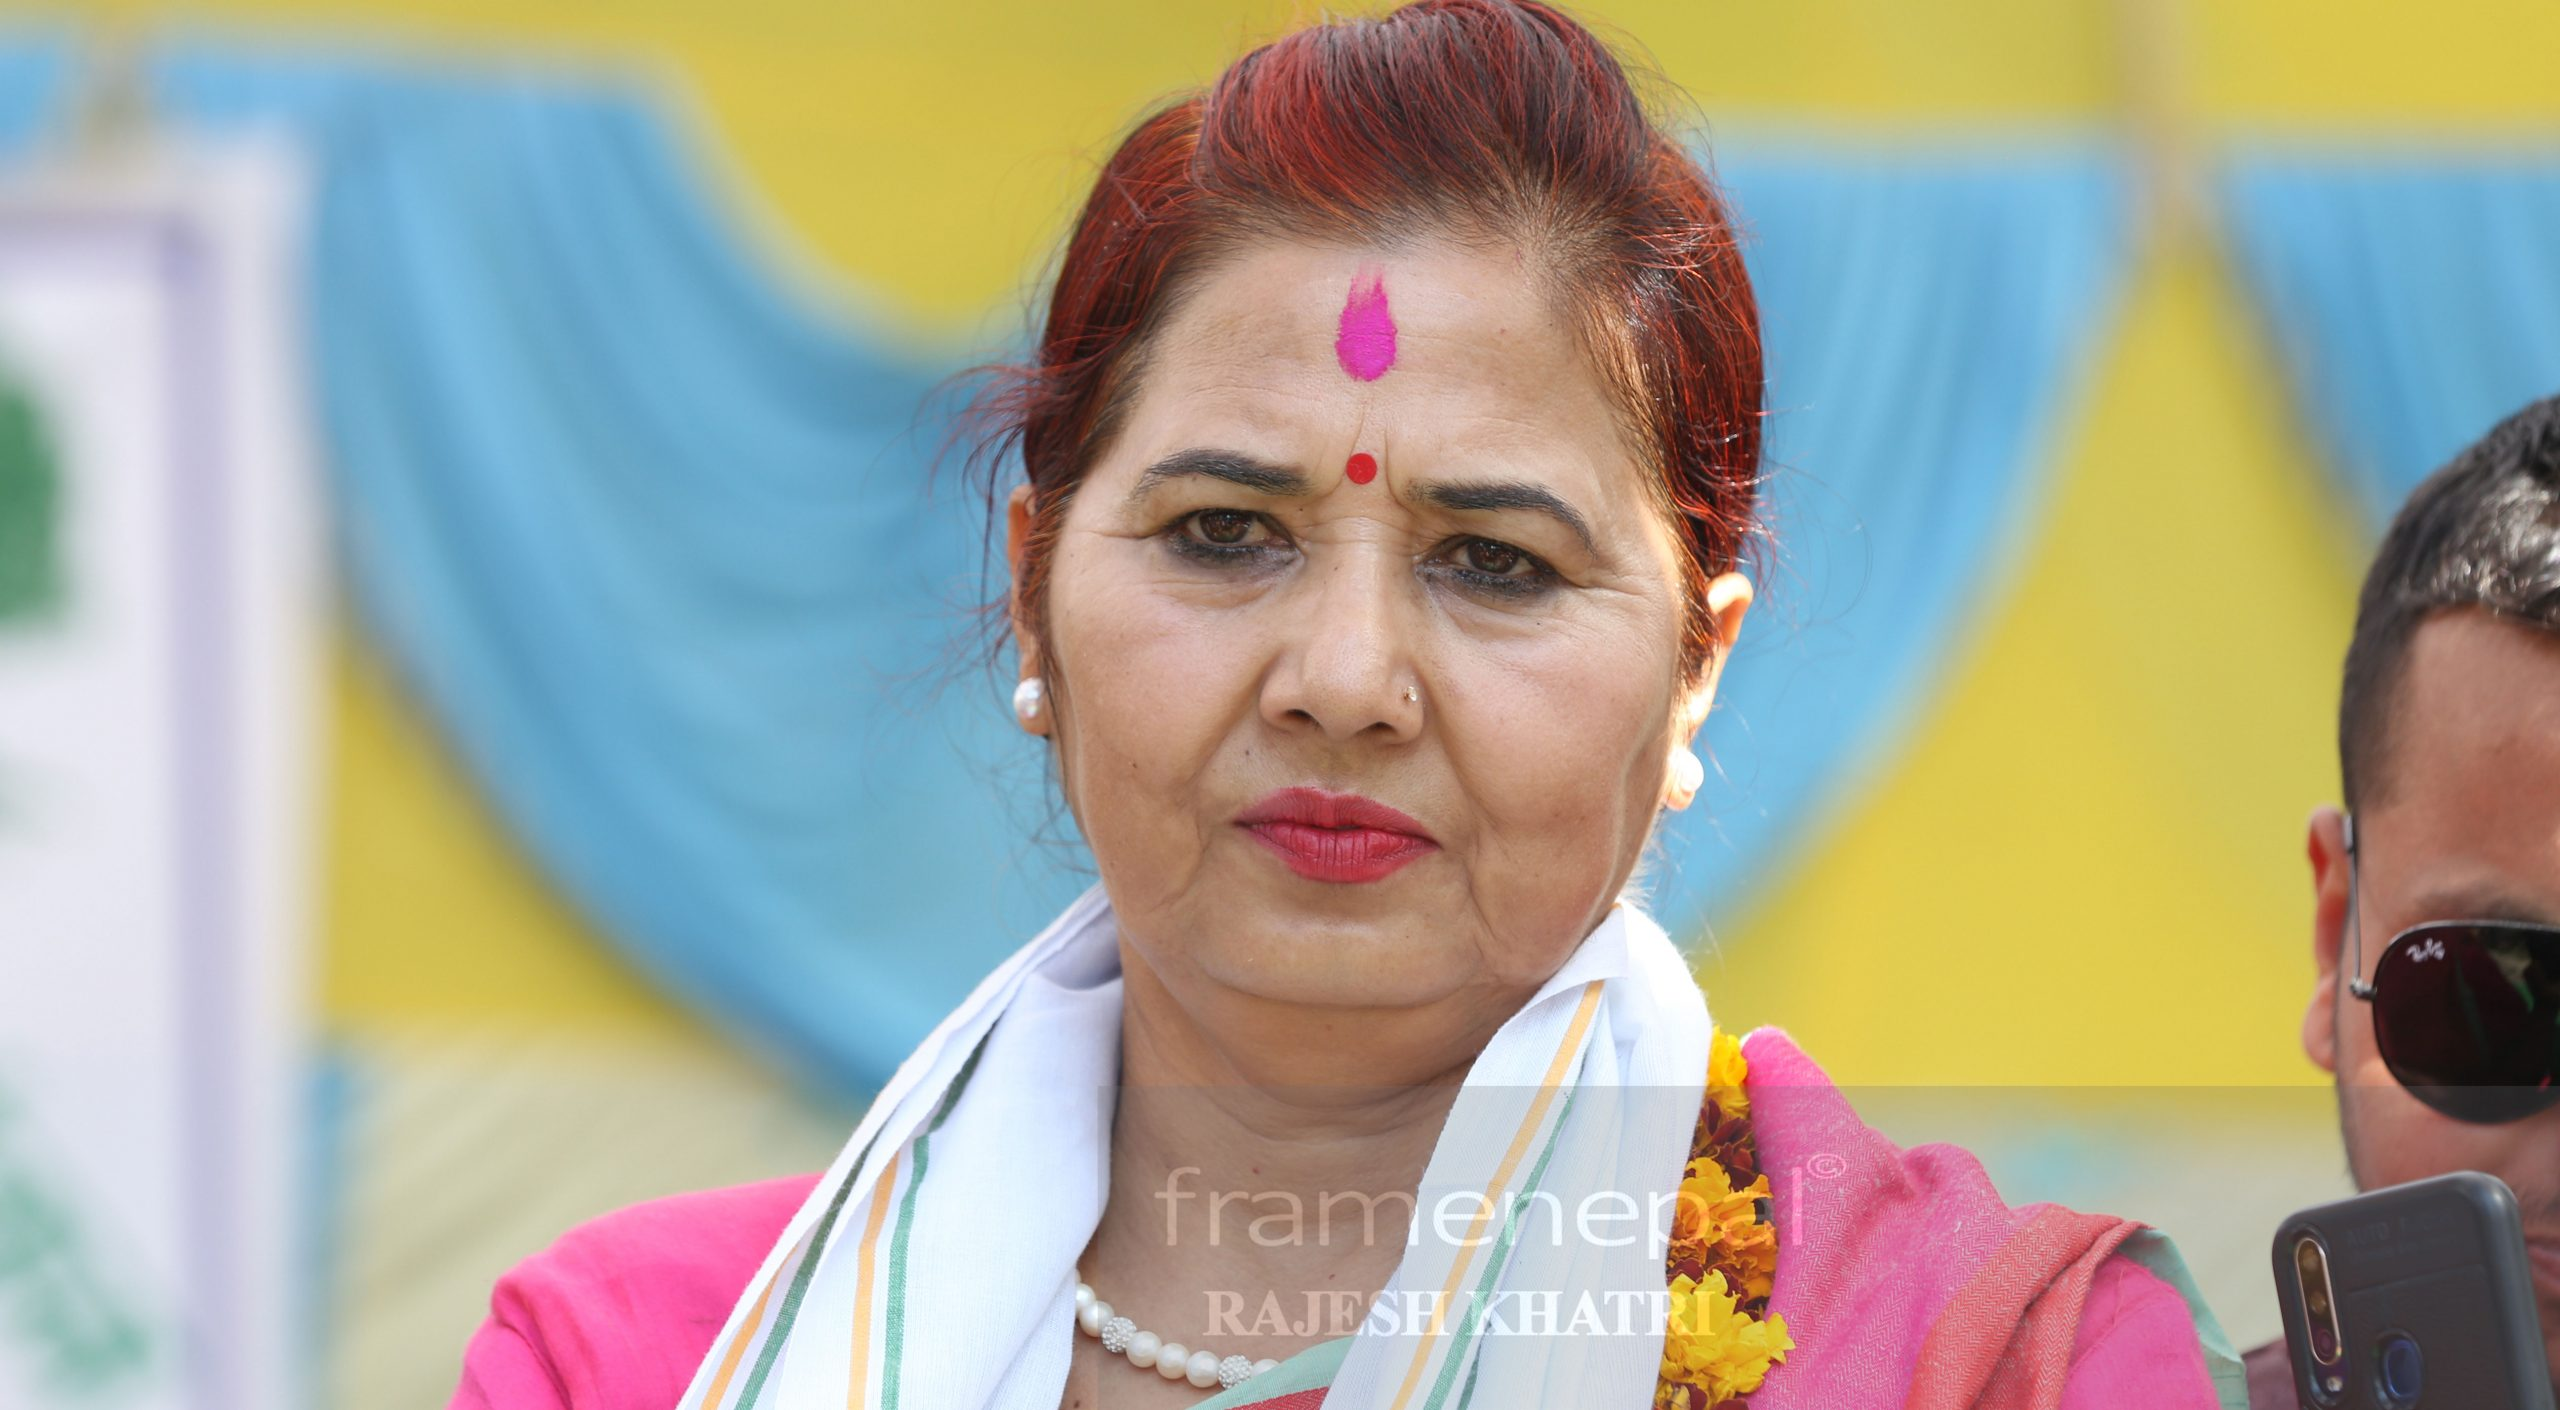 Dila Sangraula Pant, Best Image for Dila Sangraula Pant Dila Sangraula Pant is a Nepali politician. Member of the House of Representatives of the federal parliament of Nepal.